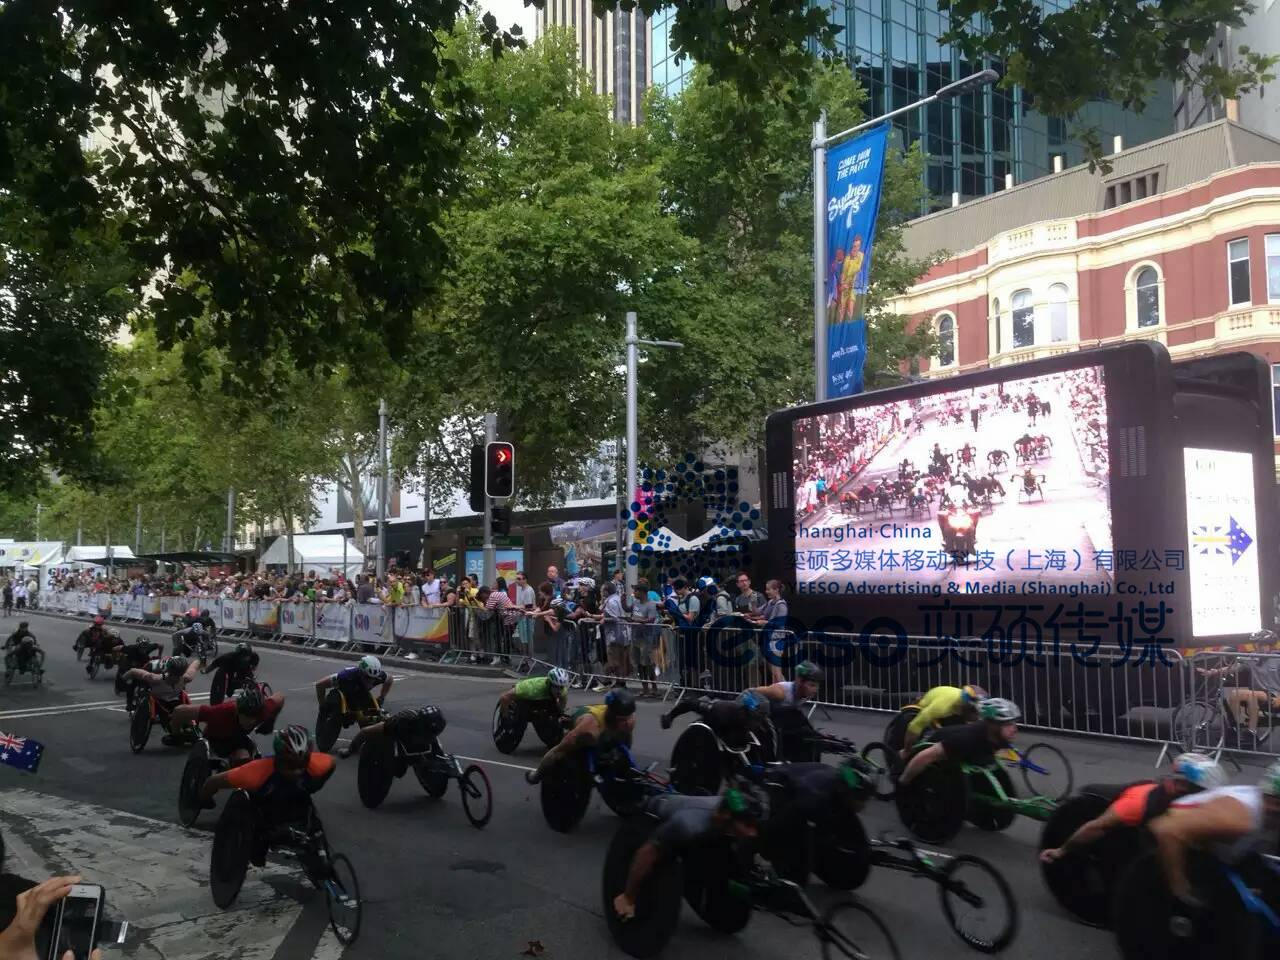 Australia wheel chair racing live broadcast-Events Broadcasting Truck